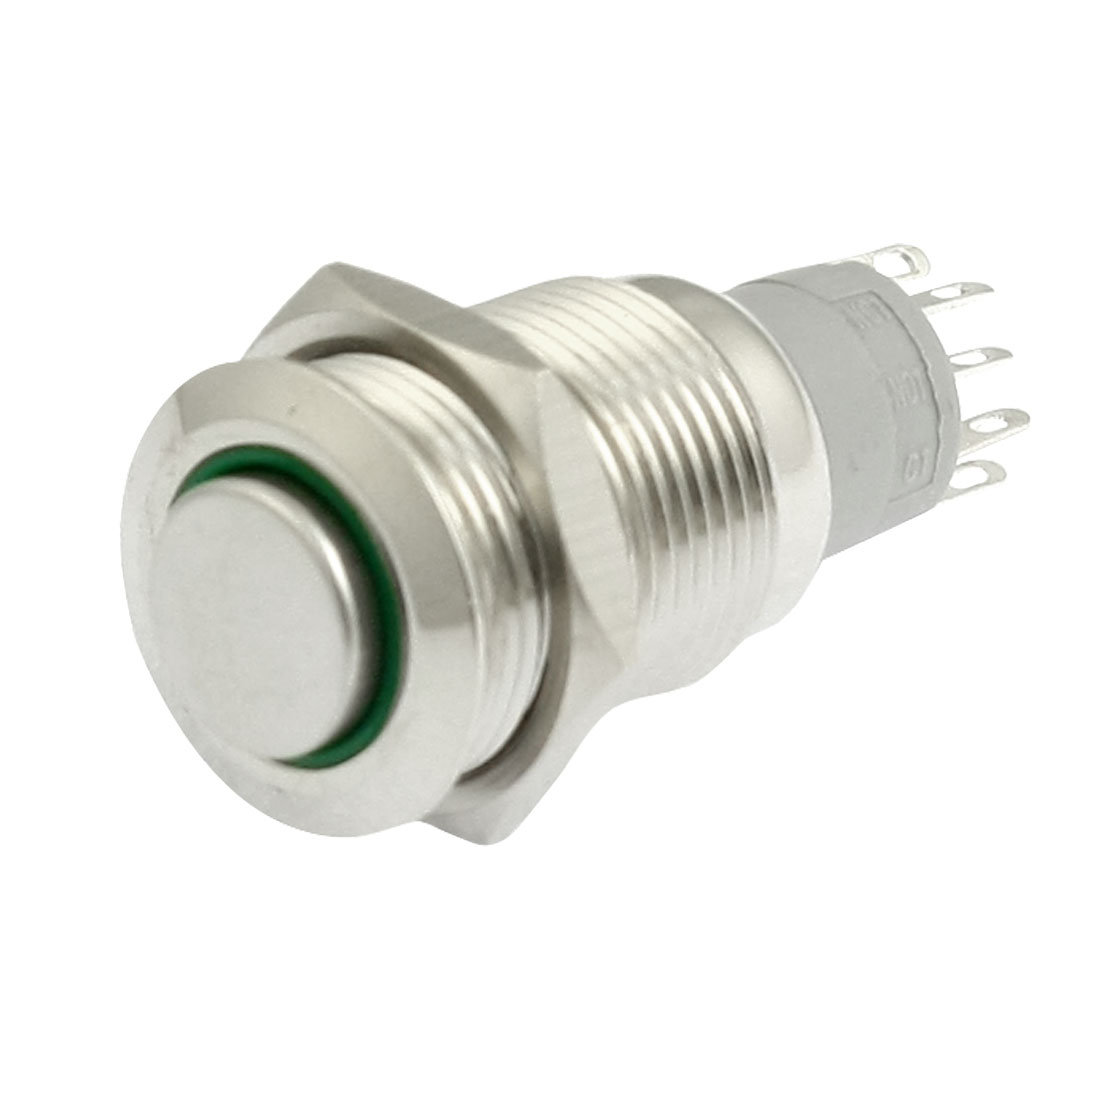 Green LED Pilot Light 24V 16mm SPDT Stainless Latching Round Push Button Switch